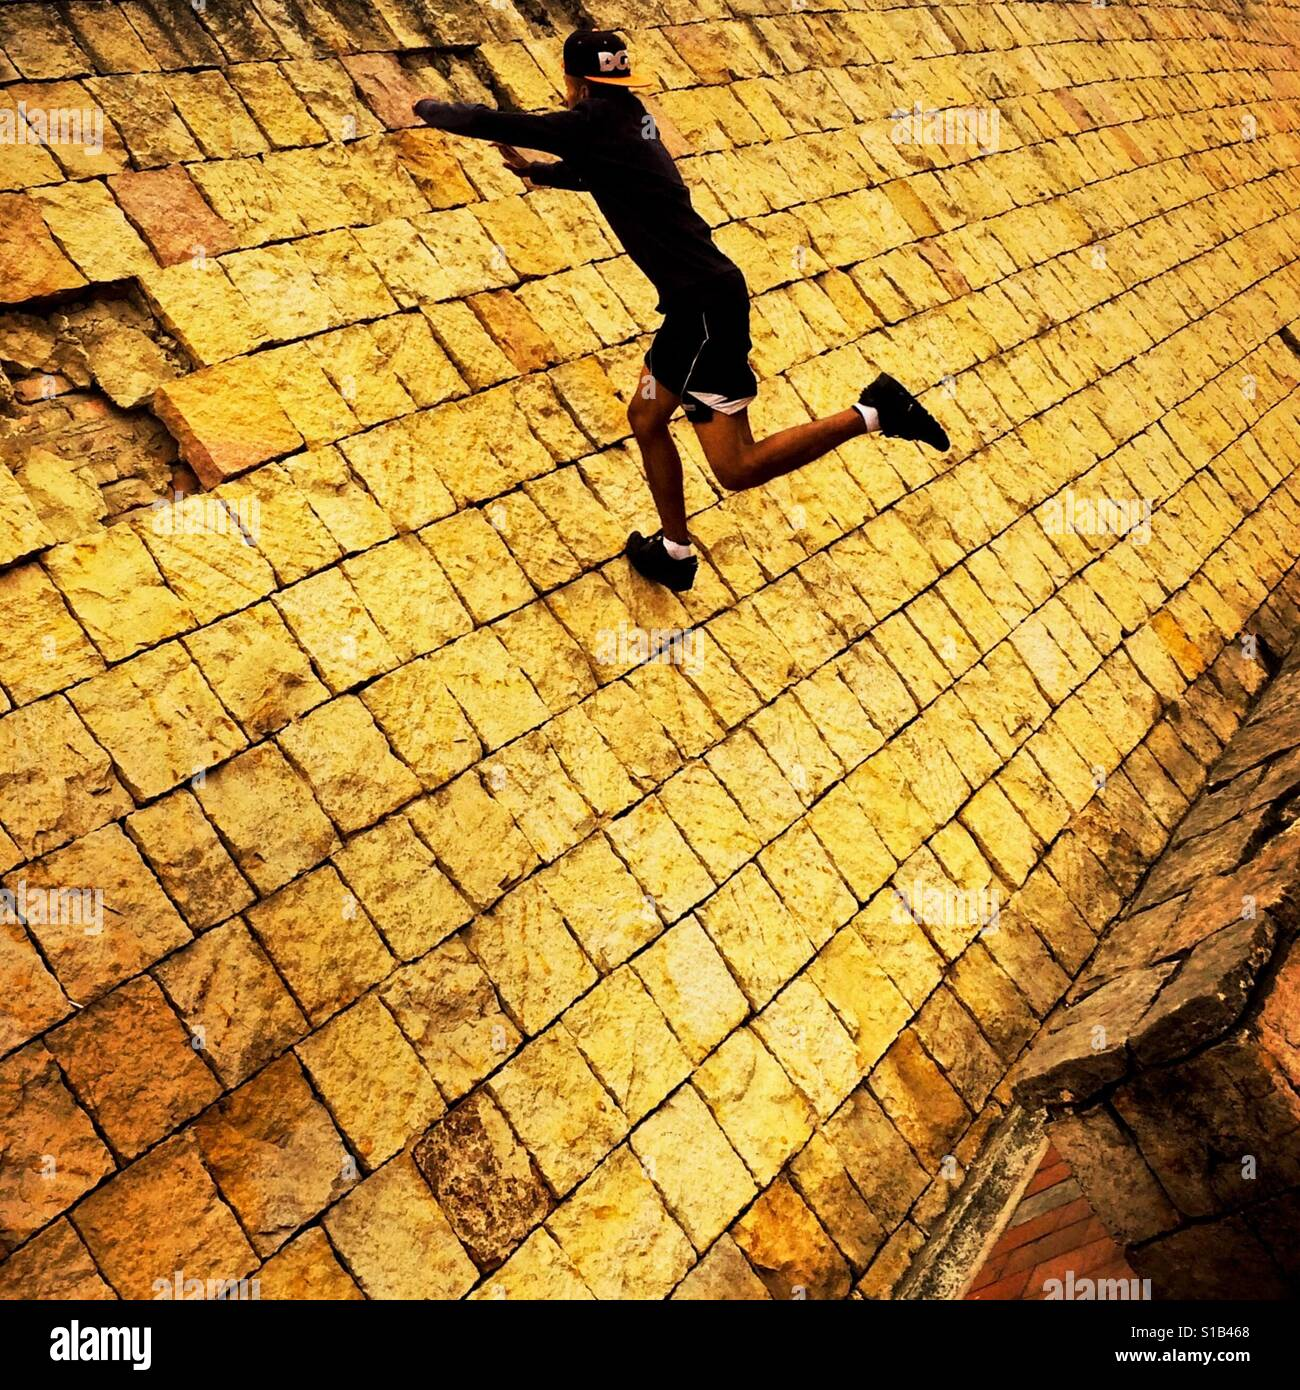 A Colombian parkour runner jumps on the wall during a free running training session held in a park in Kennedy, Bogotá, - Stock Image